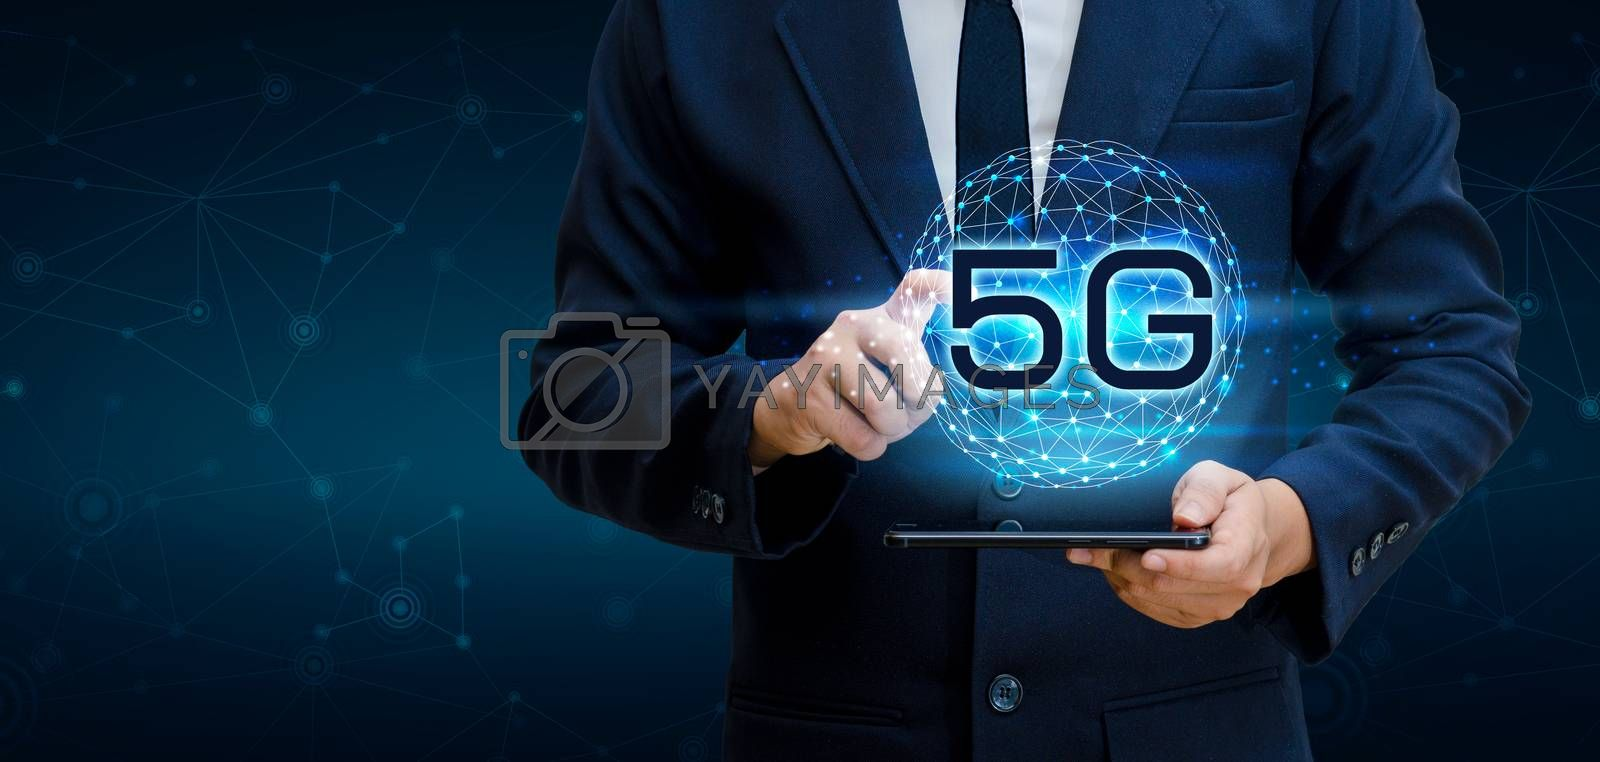 phone 5g Earth businessman connect worldwide waiter hand holding an empty digital tablet with smart and 5G network connection concept by Sarayut